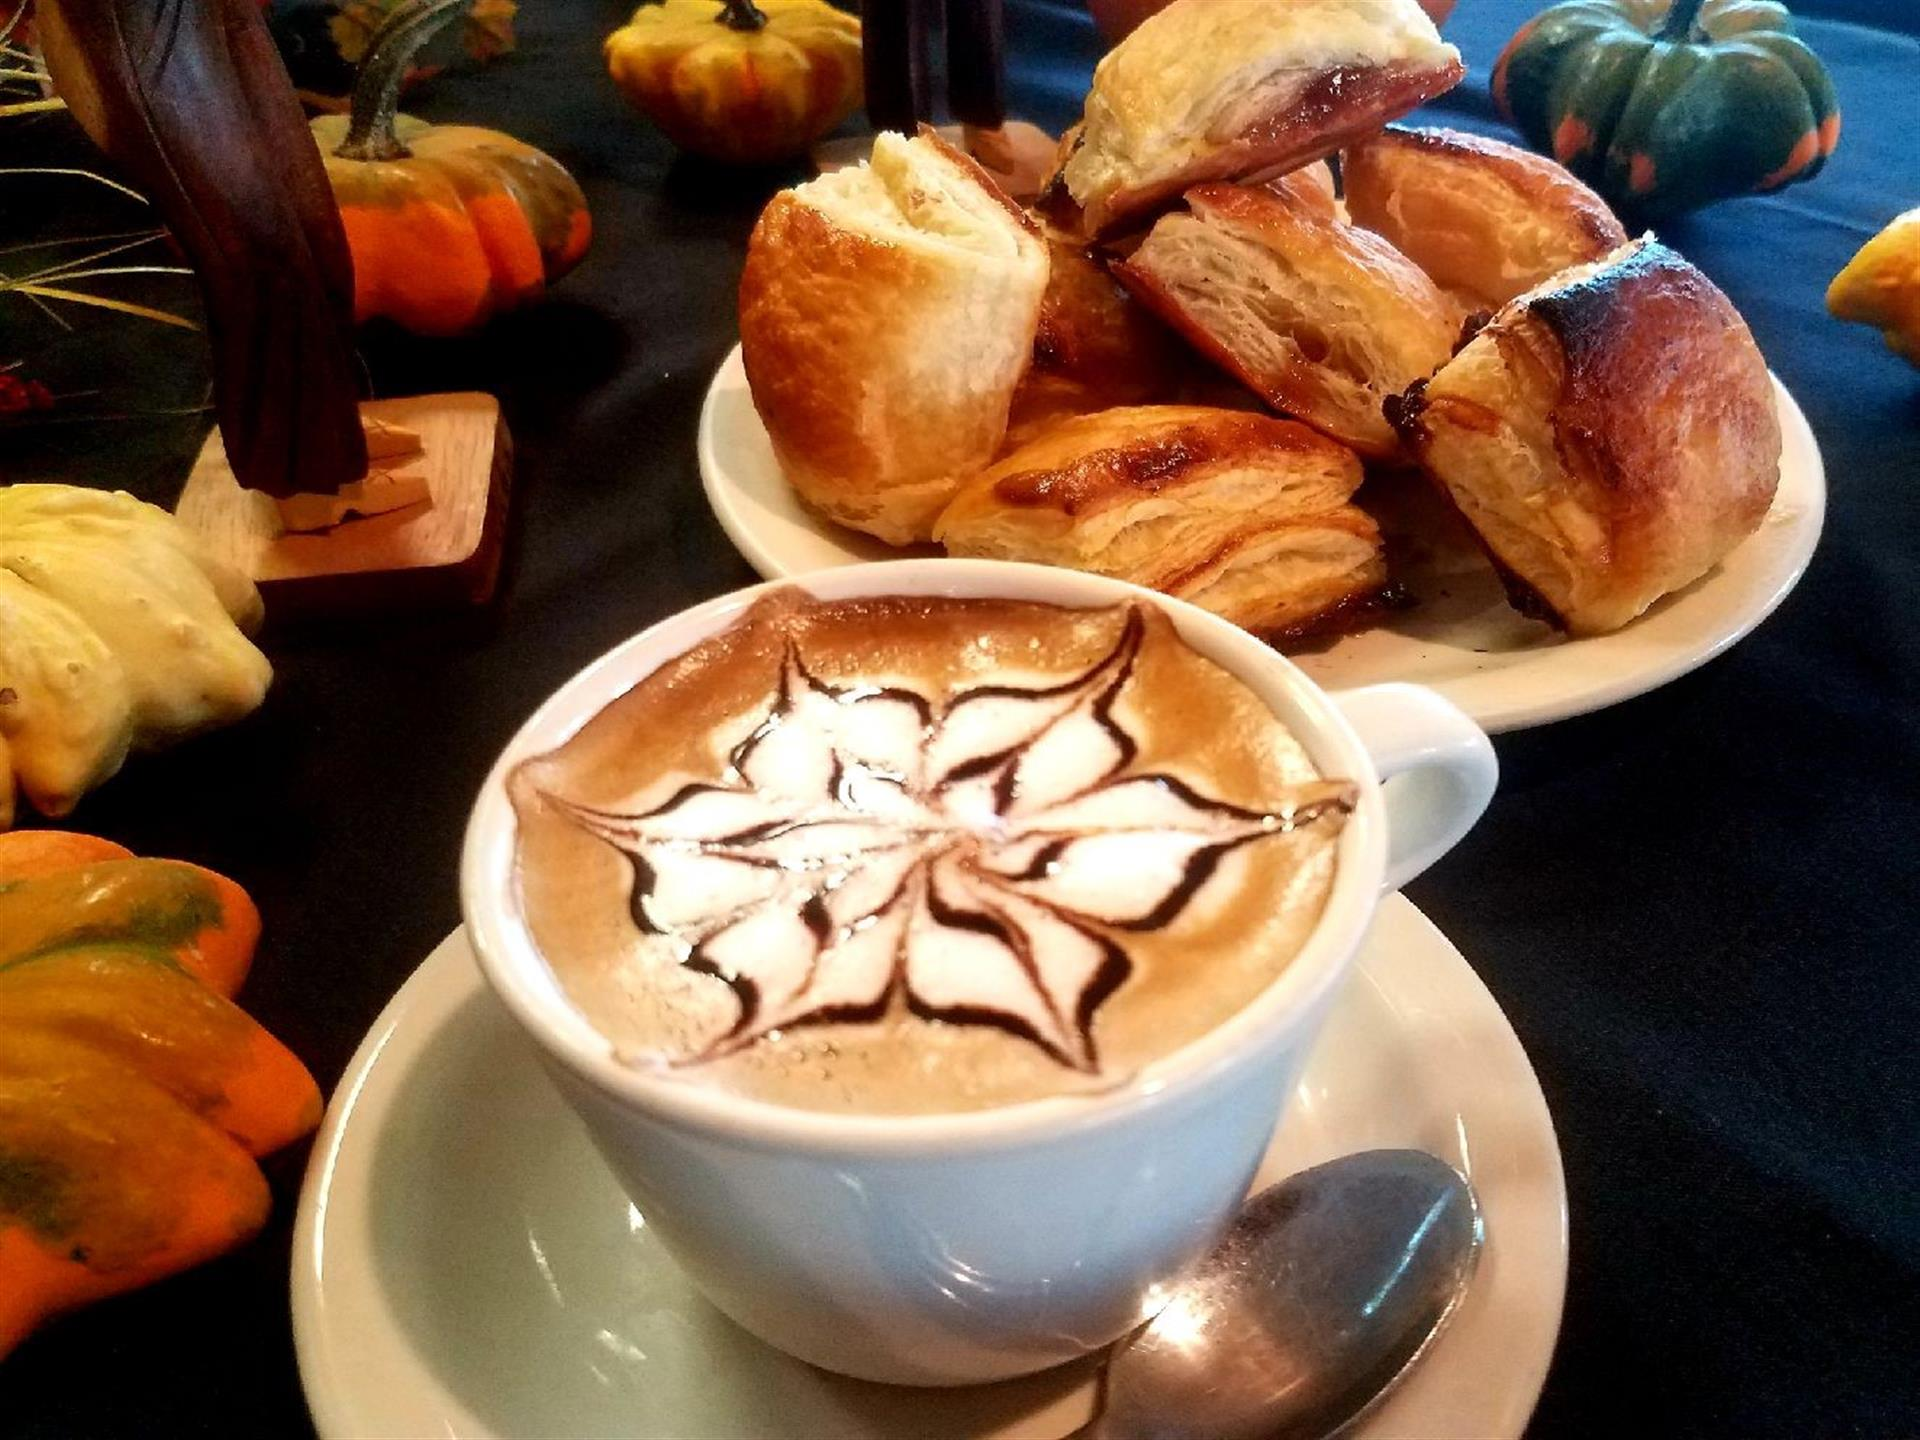 capuccino in a white cup and saucer with decorated foam. pastries on the table in the background.